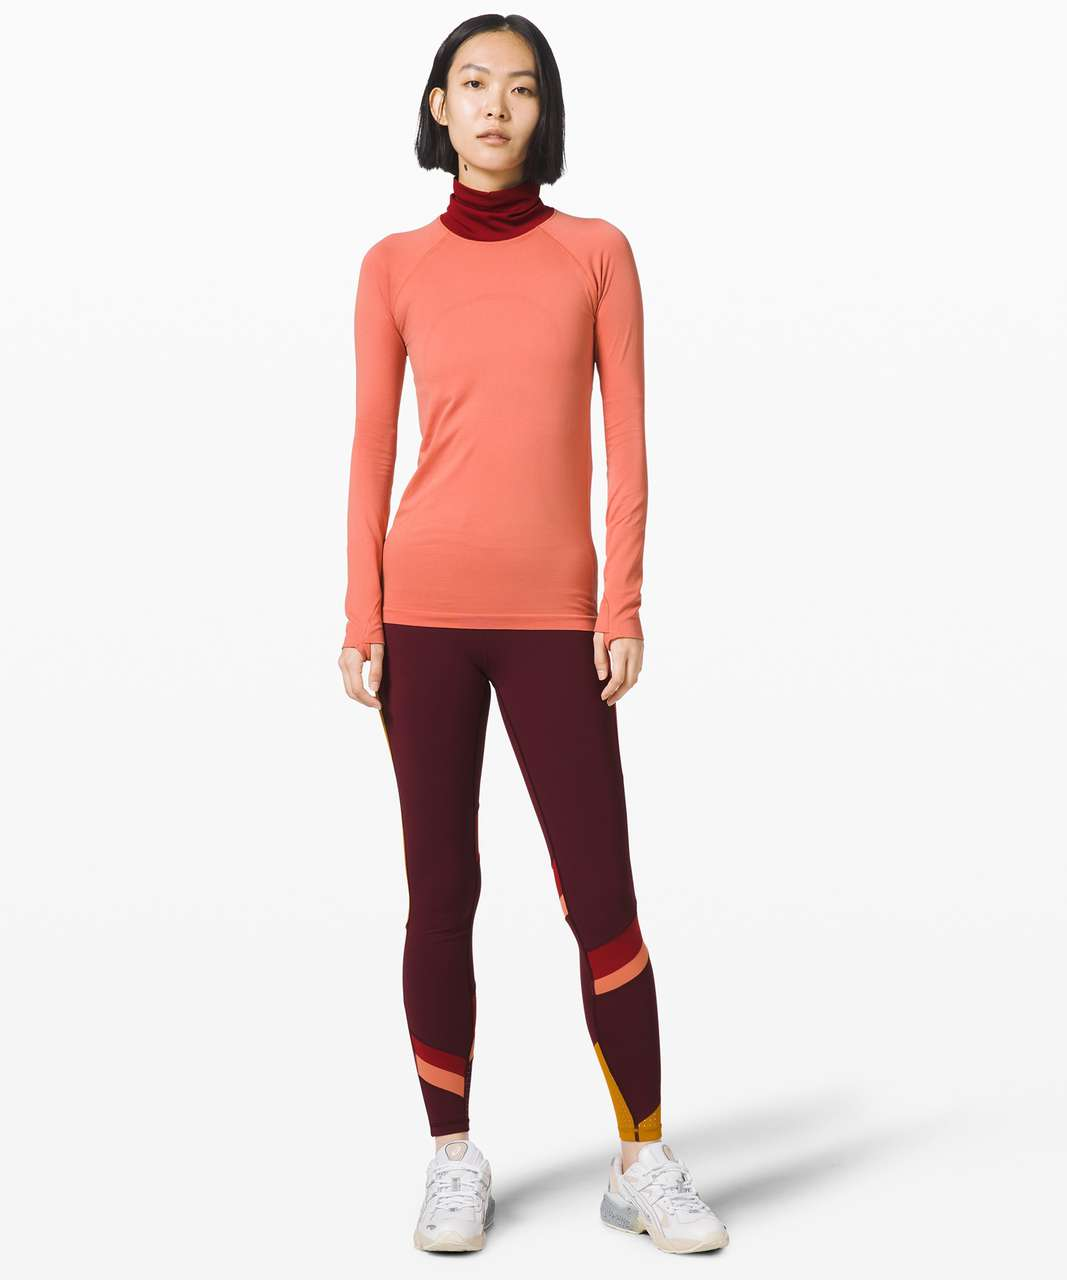 "Lululemon Break New Ground Tight 28"" *lululemon x Roksanda - Garnet / Caliente / Rustic Coral"